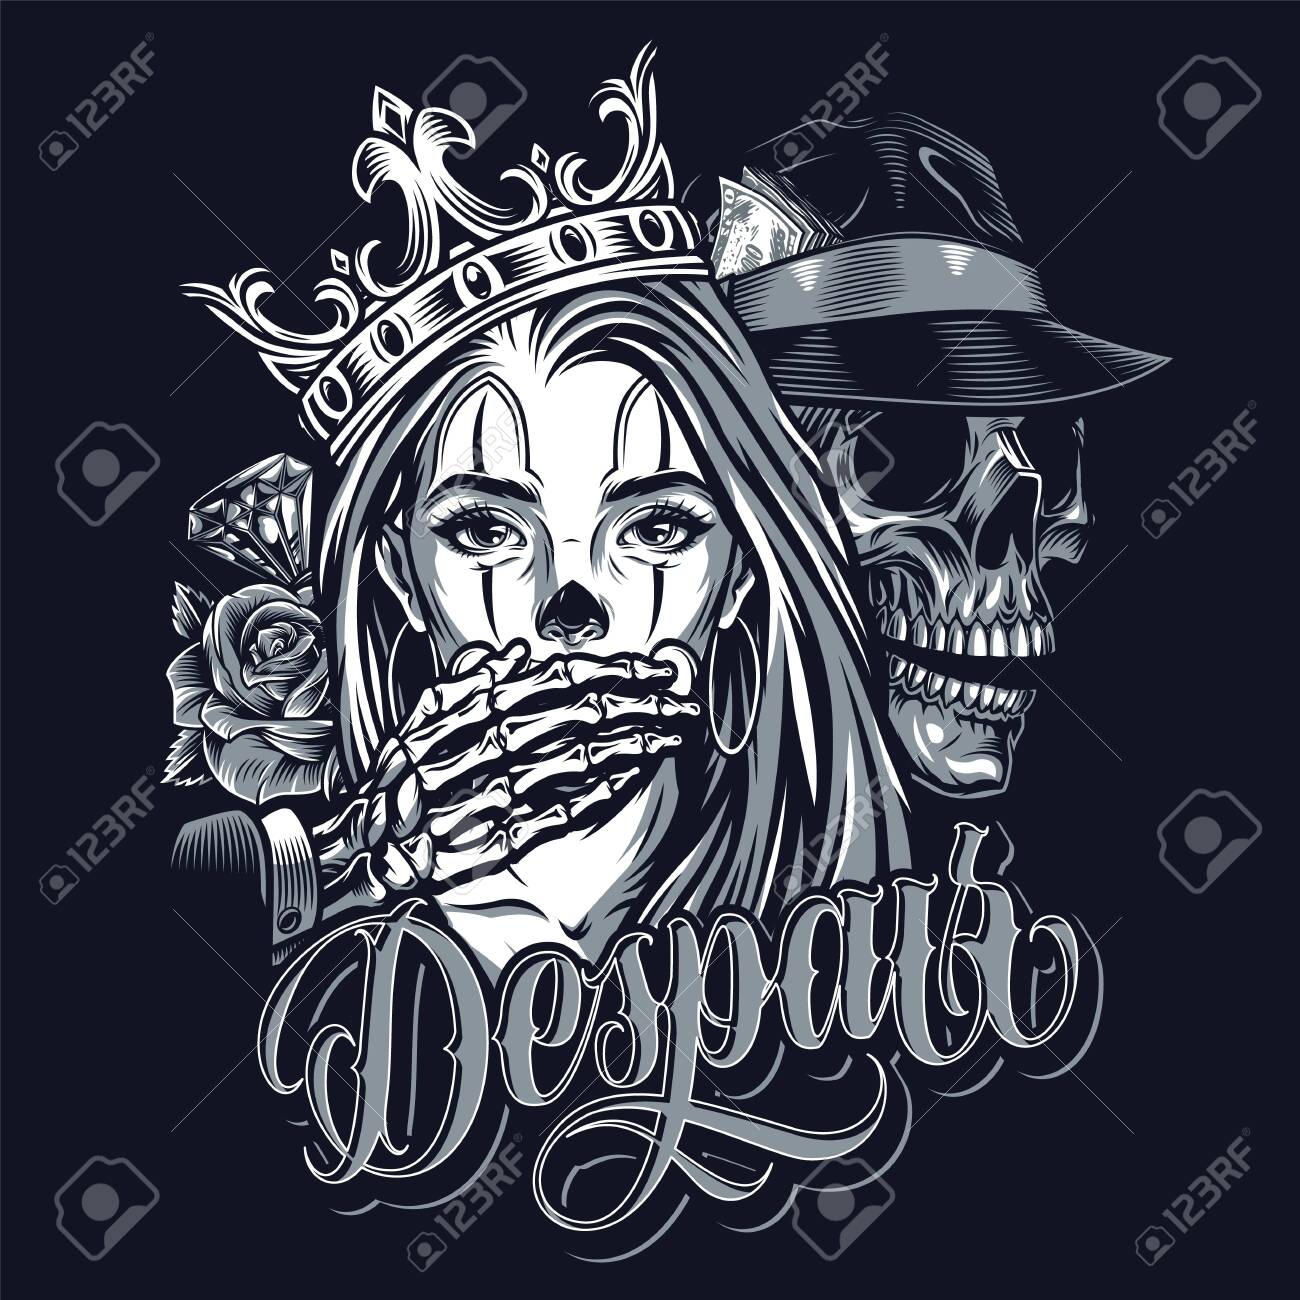 Vintage Chicano Style Tattoo Template With Diamond Roses Skeleton Royalty Free Cliparts Vectors And Stock Illustration Image 136450614